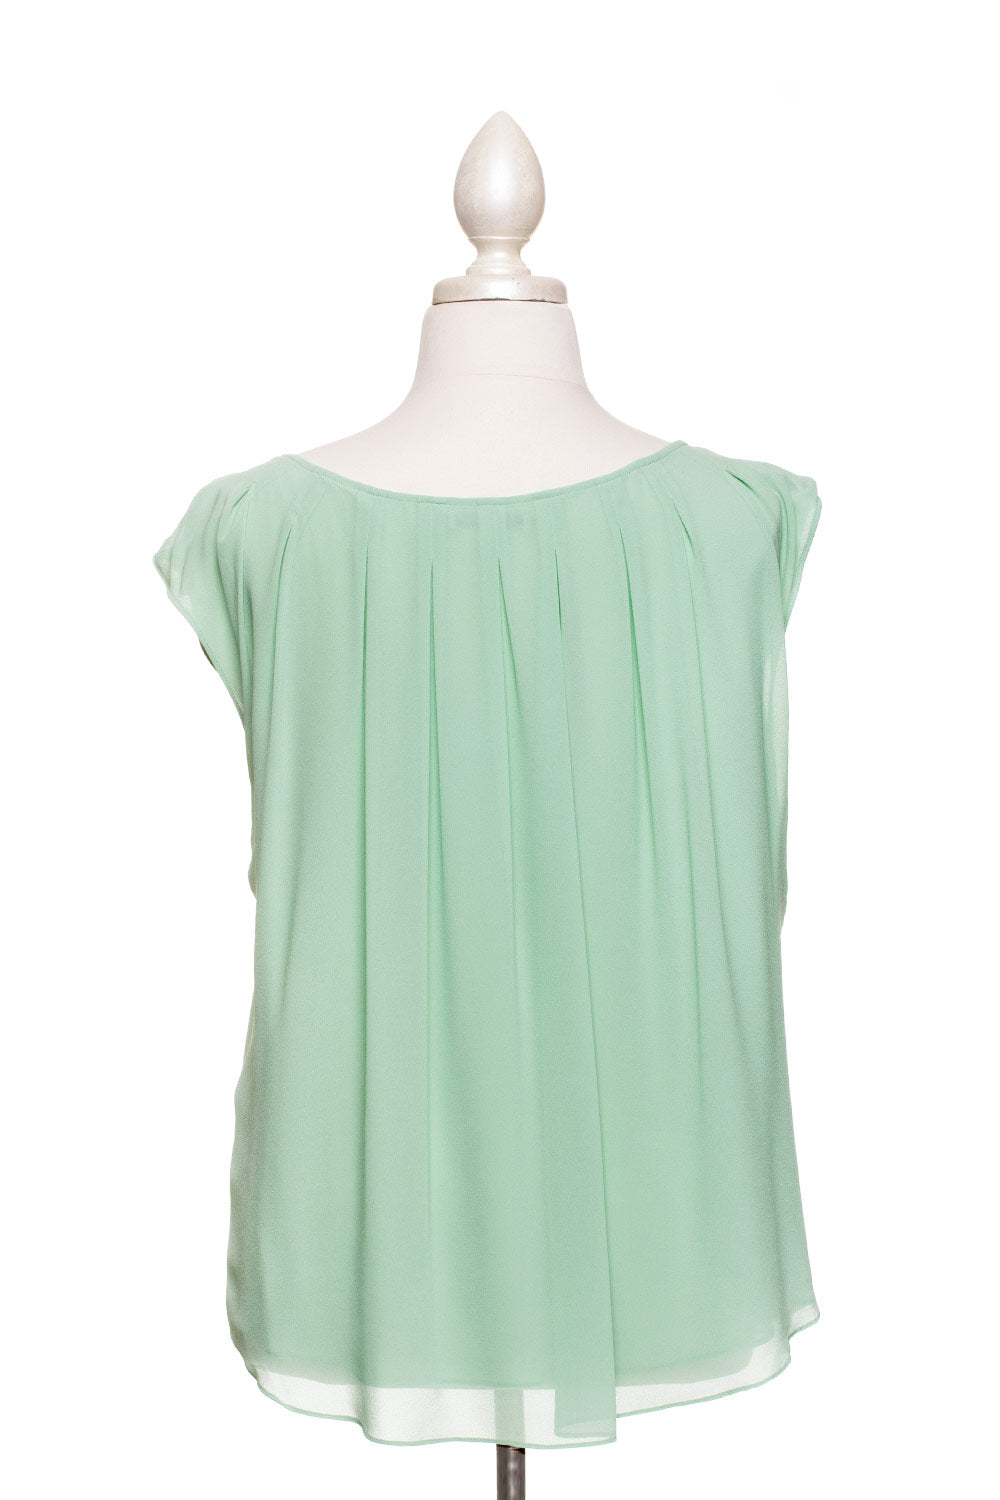 Type 2 Finesse Top in Green